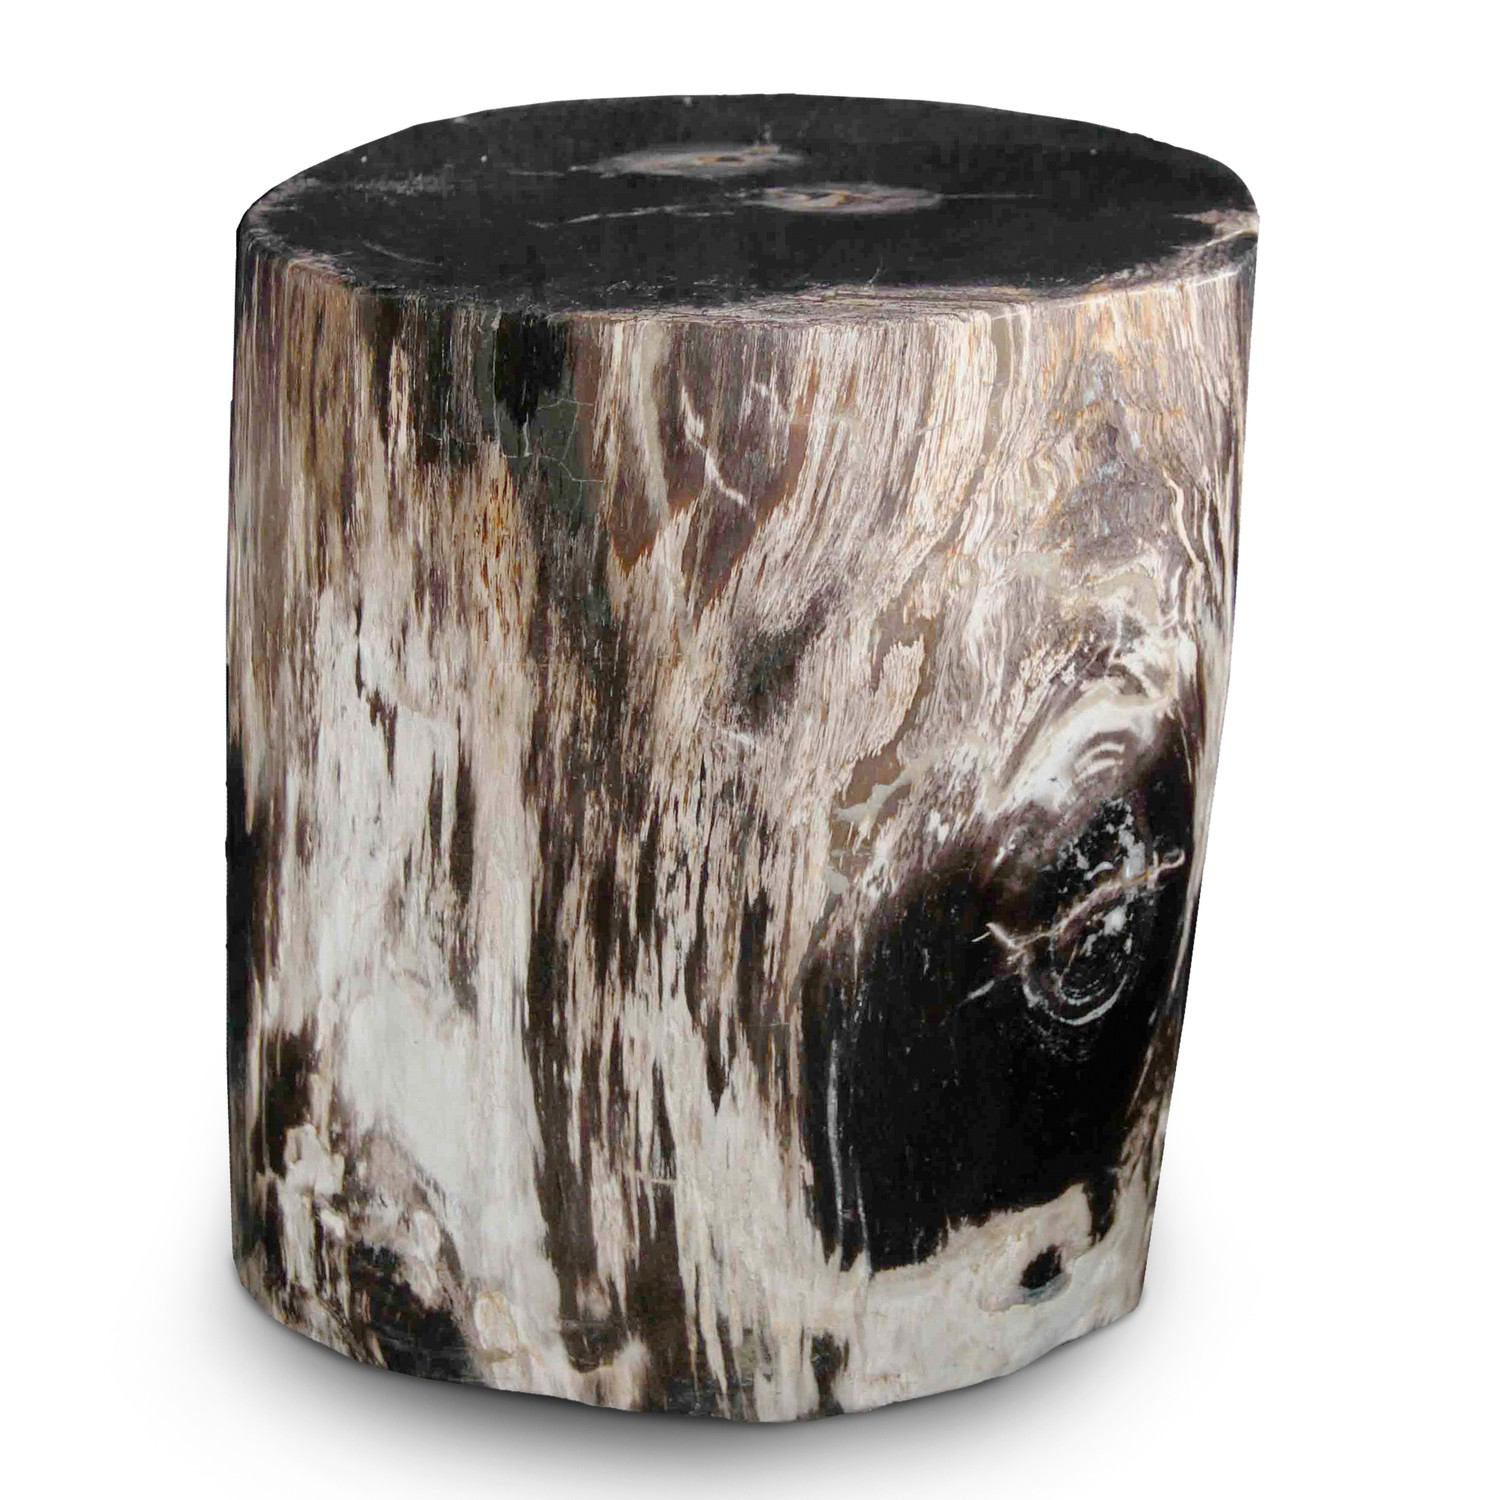 Petrified Wood Stool PF-2025 by AIRE Furniture